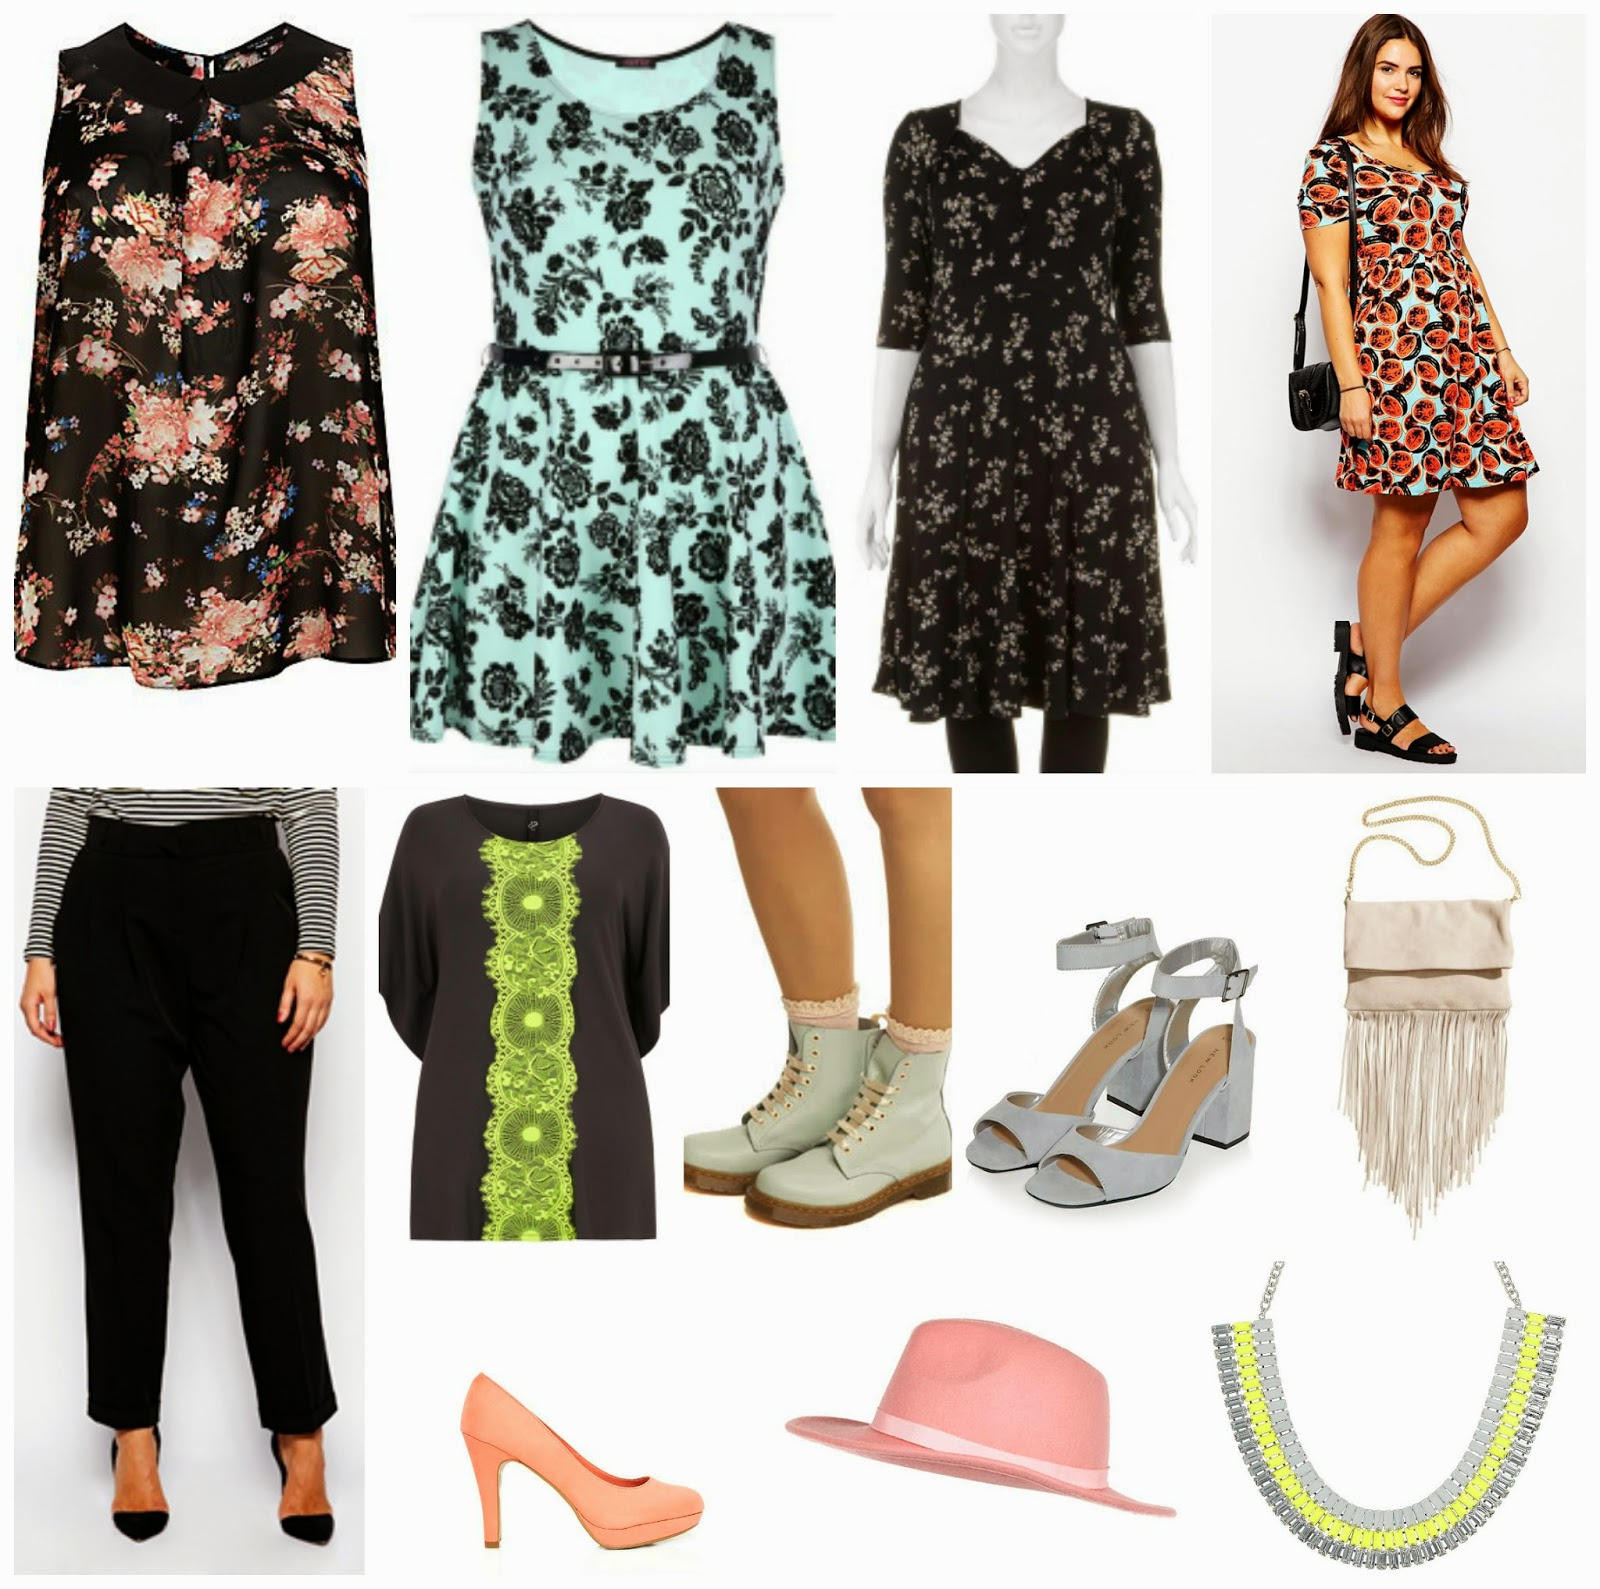 Spring Plus Size Fashion Wishlist